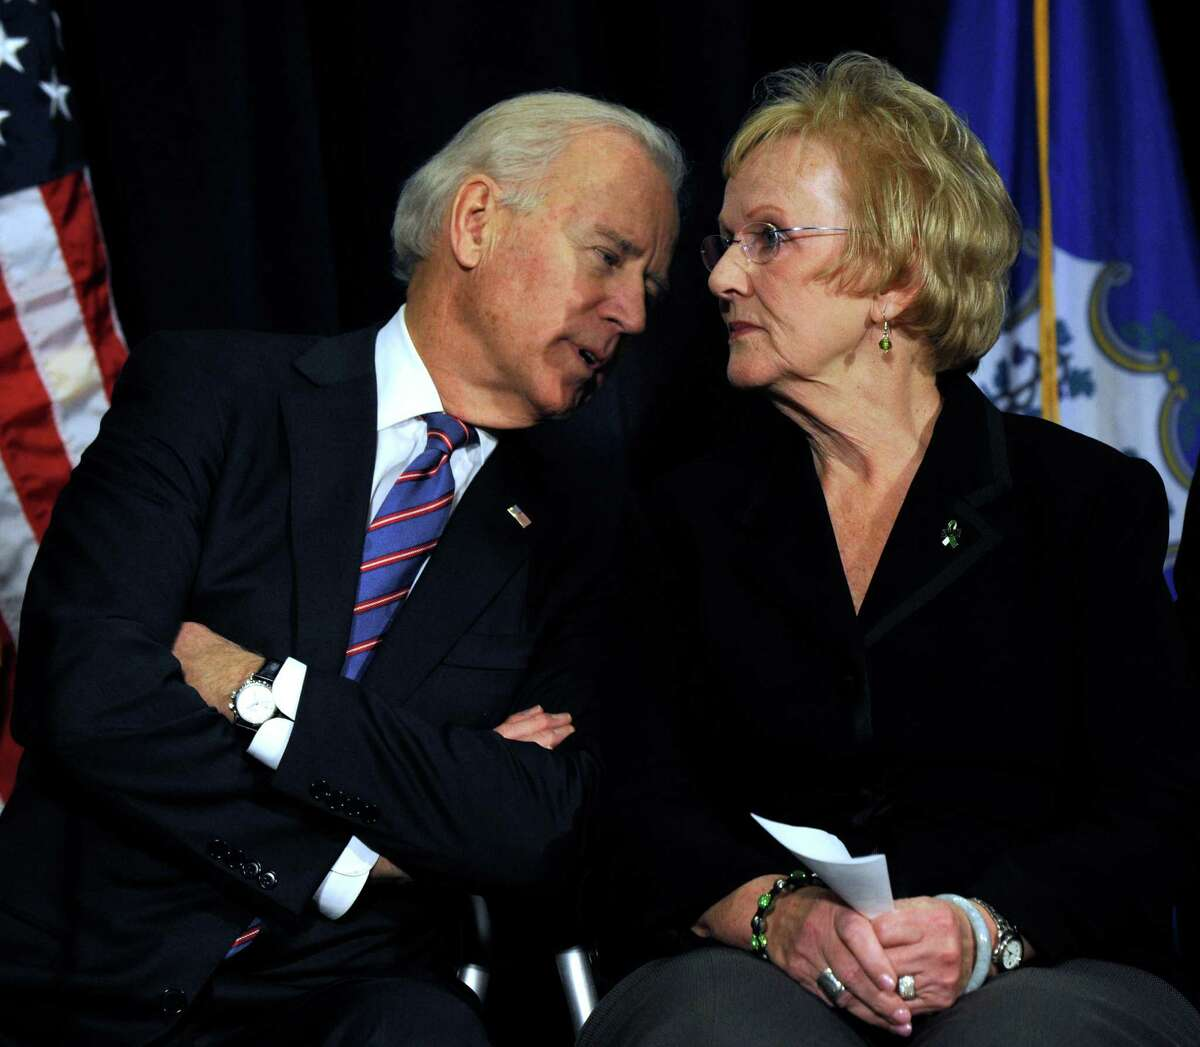 Vice President Joe Biden has a word with Newtown First Selectman Pat Llodra before speaking at a conference on gun violence at Western Connecticut State University in Danbury, Conn., Thursday, Feb. 21, 2013.